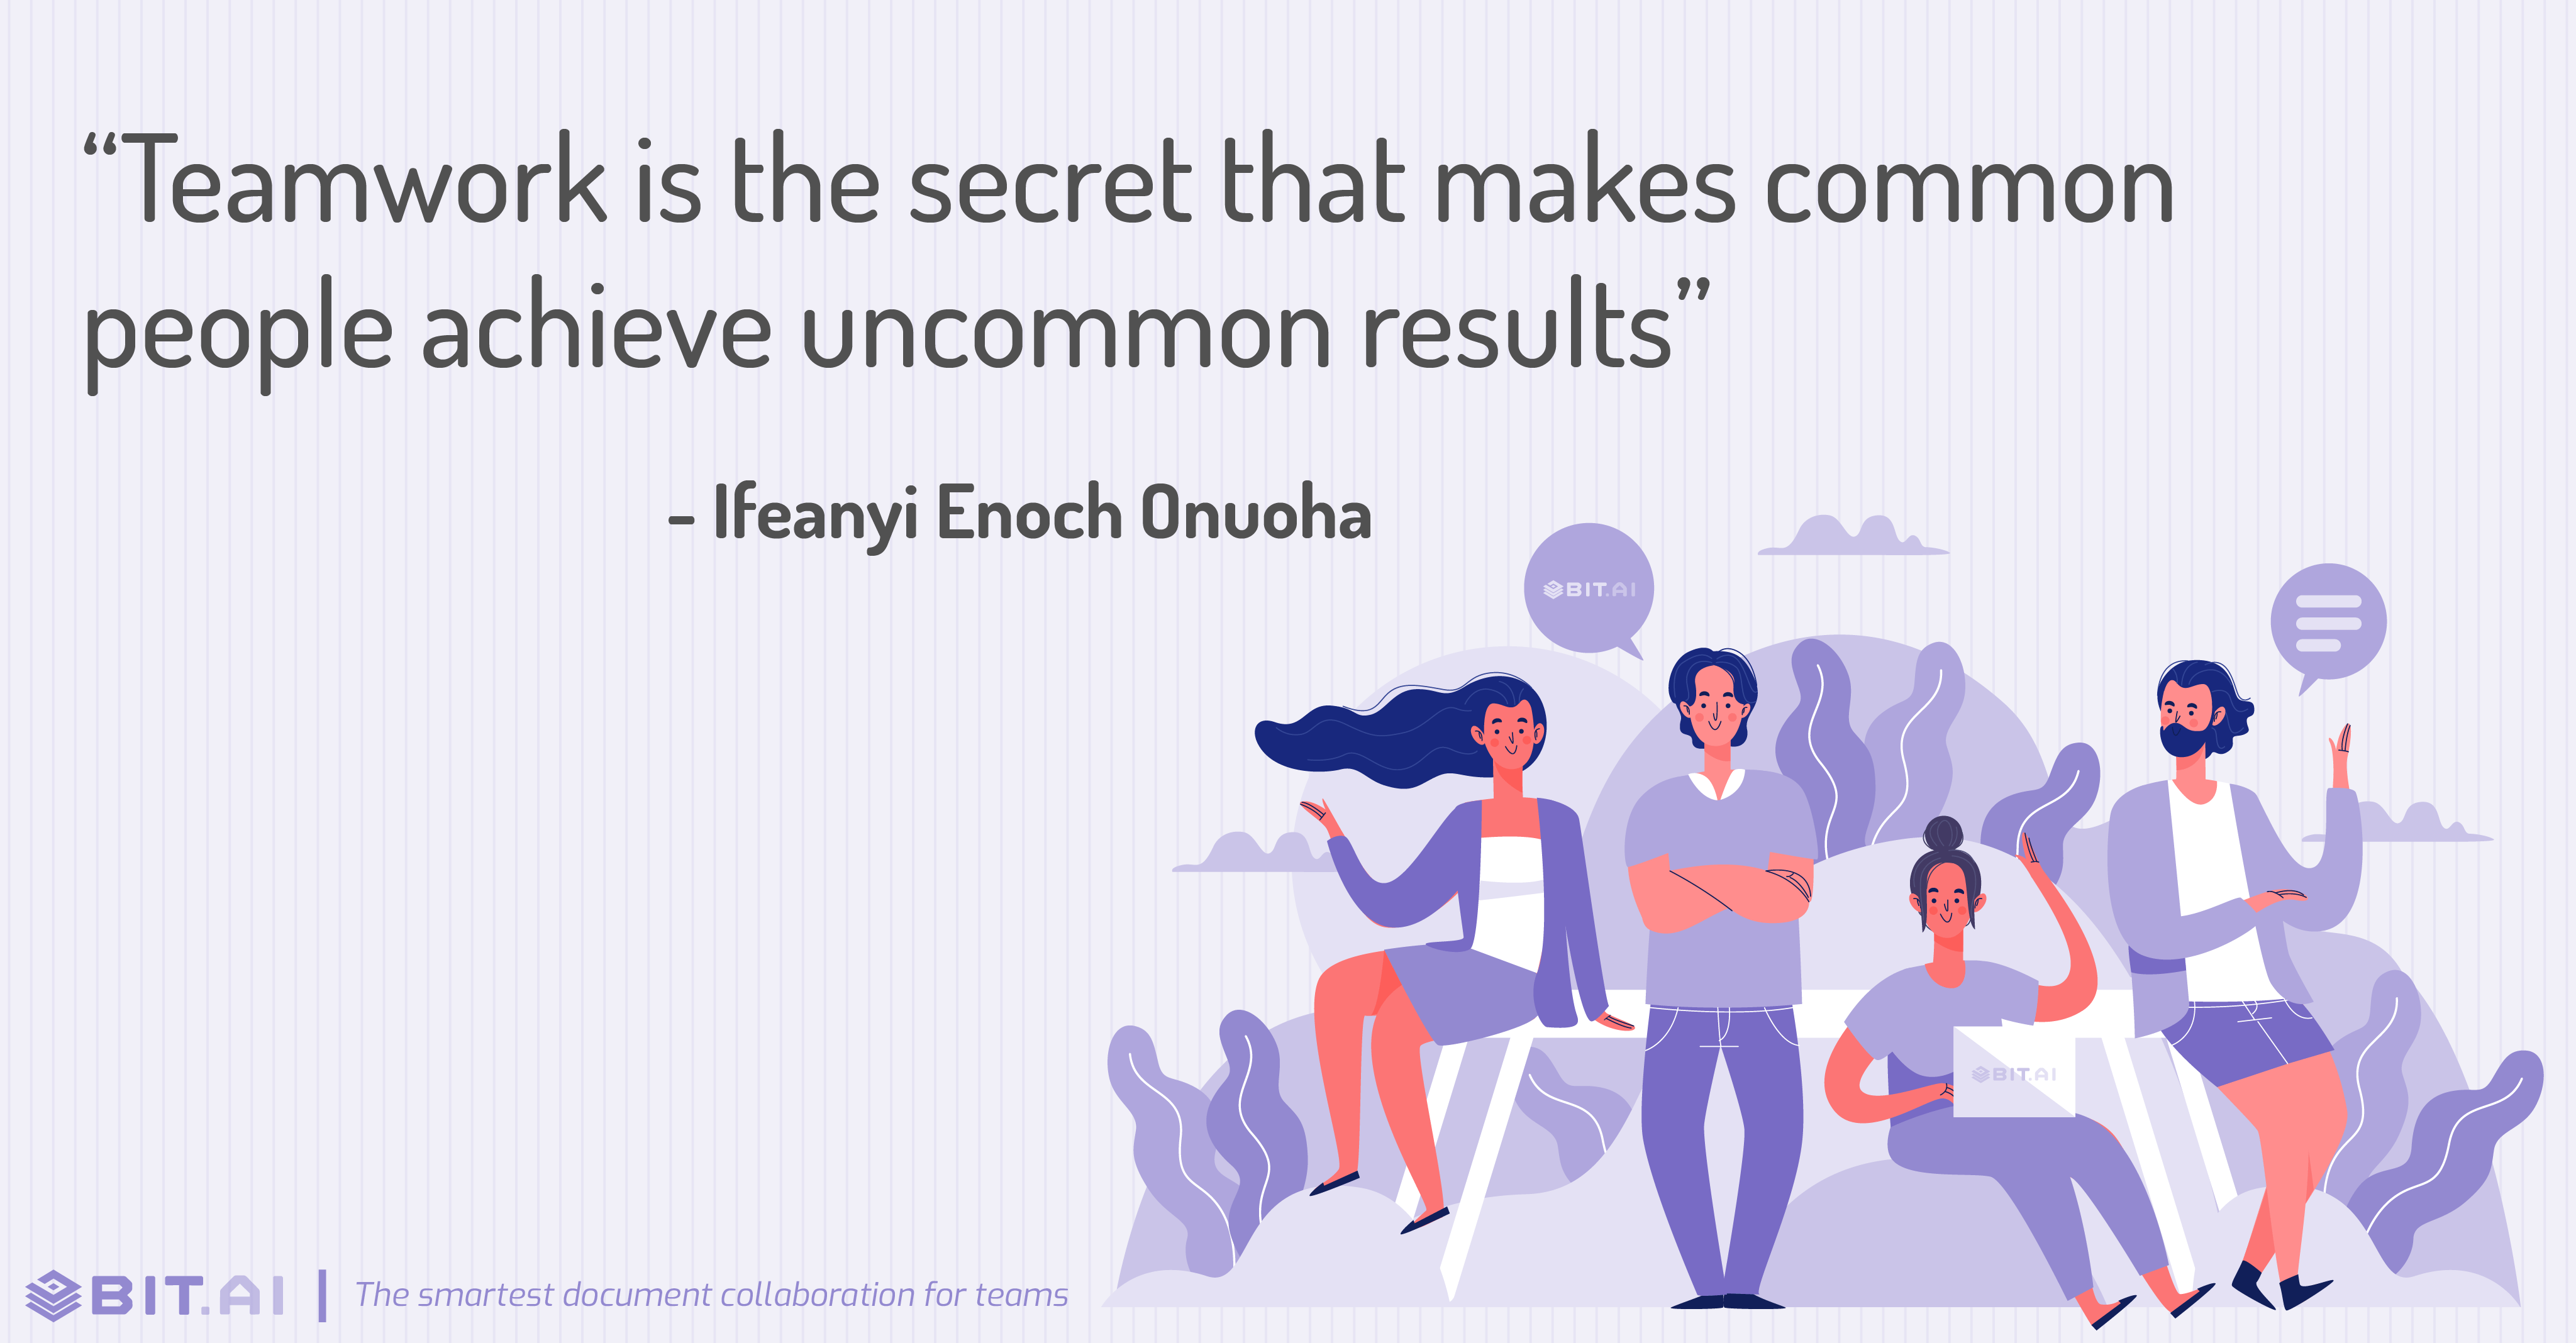 """Teamwork is the secret that makes common people achieve uncommon results"" - Ifeanyi Enoch Onuoha"